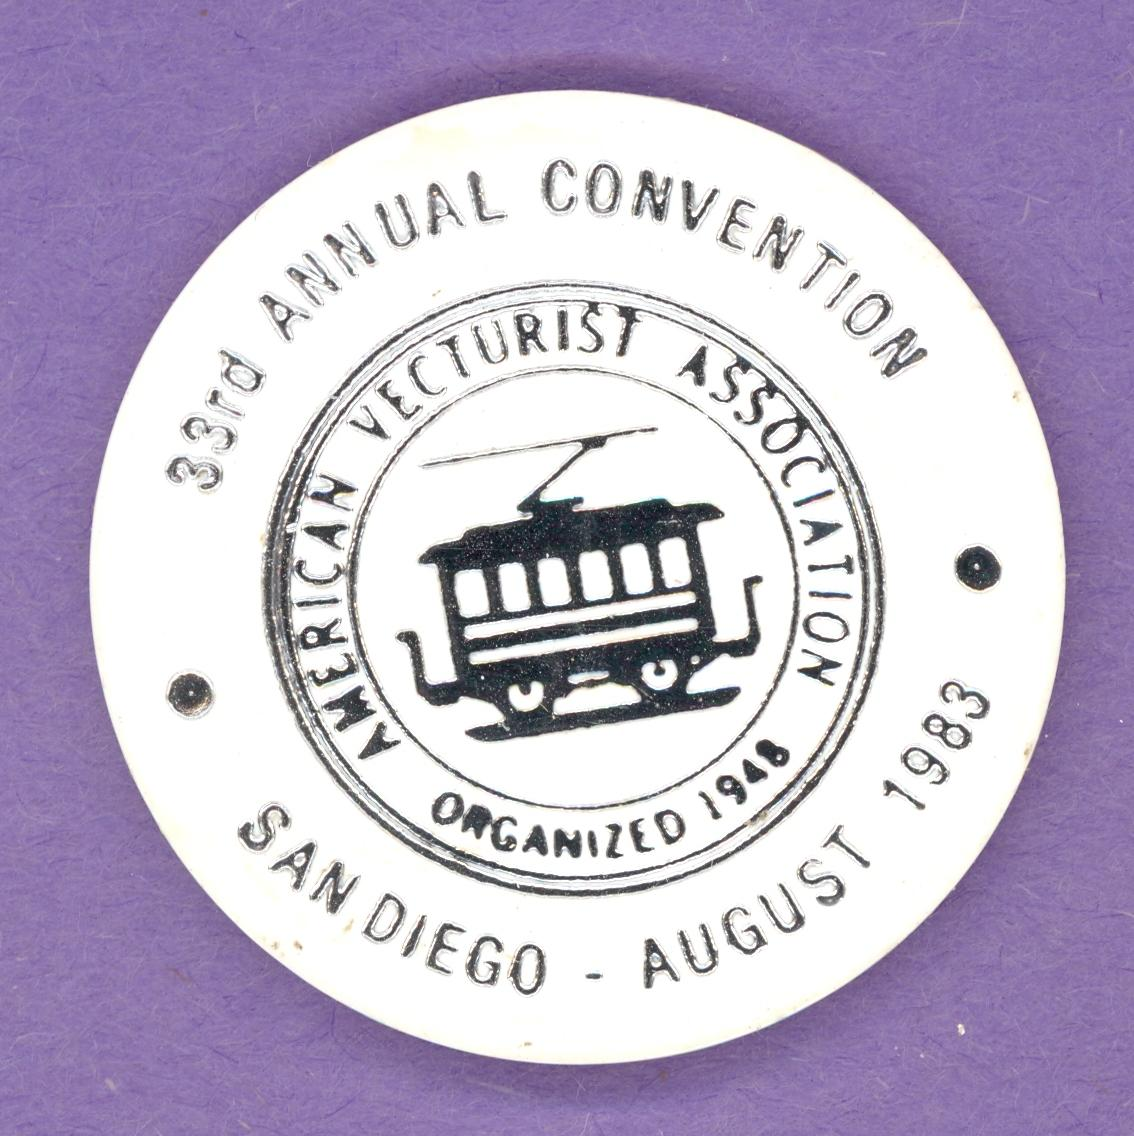 1983 American Vecturist Association San Diego - Colbert